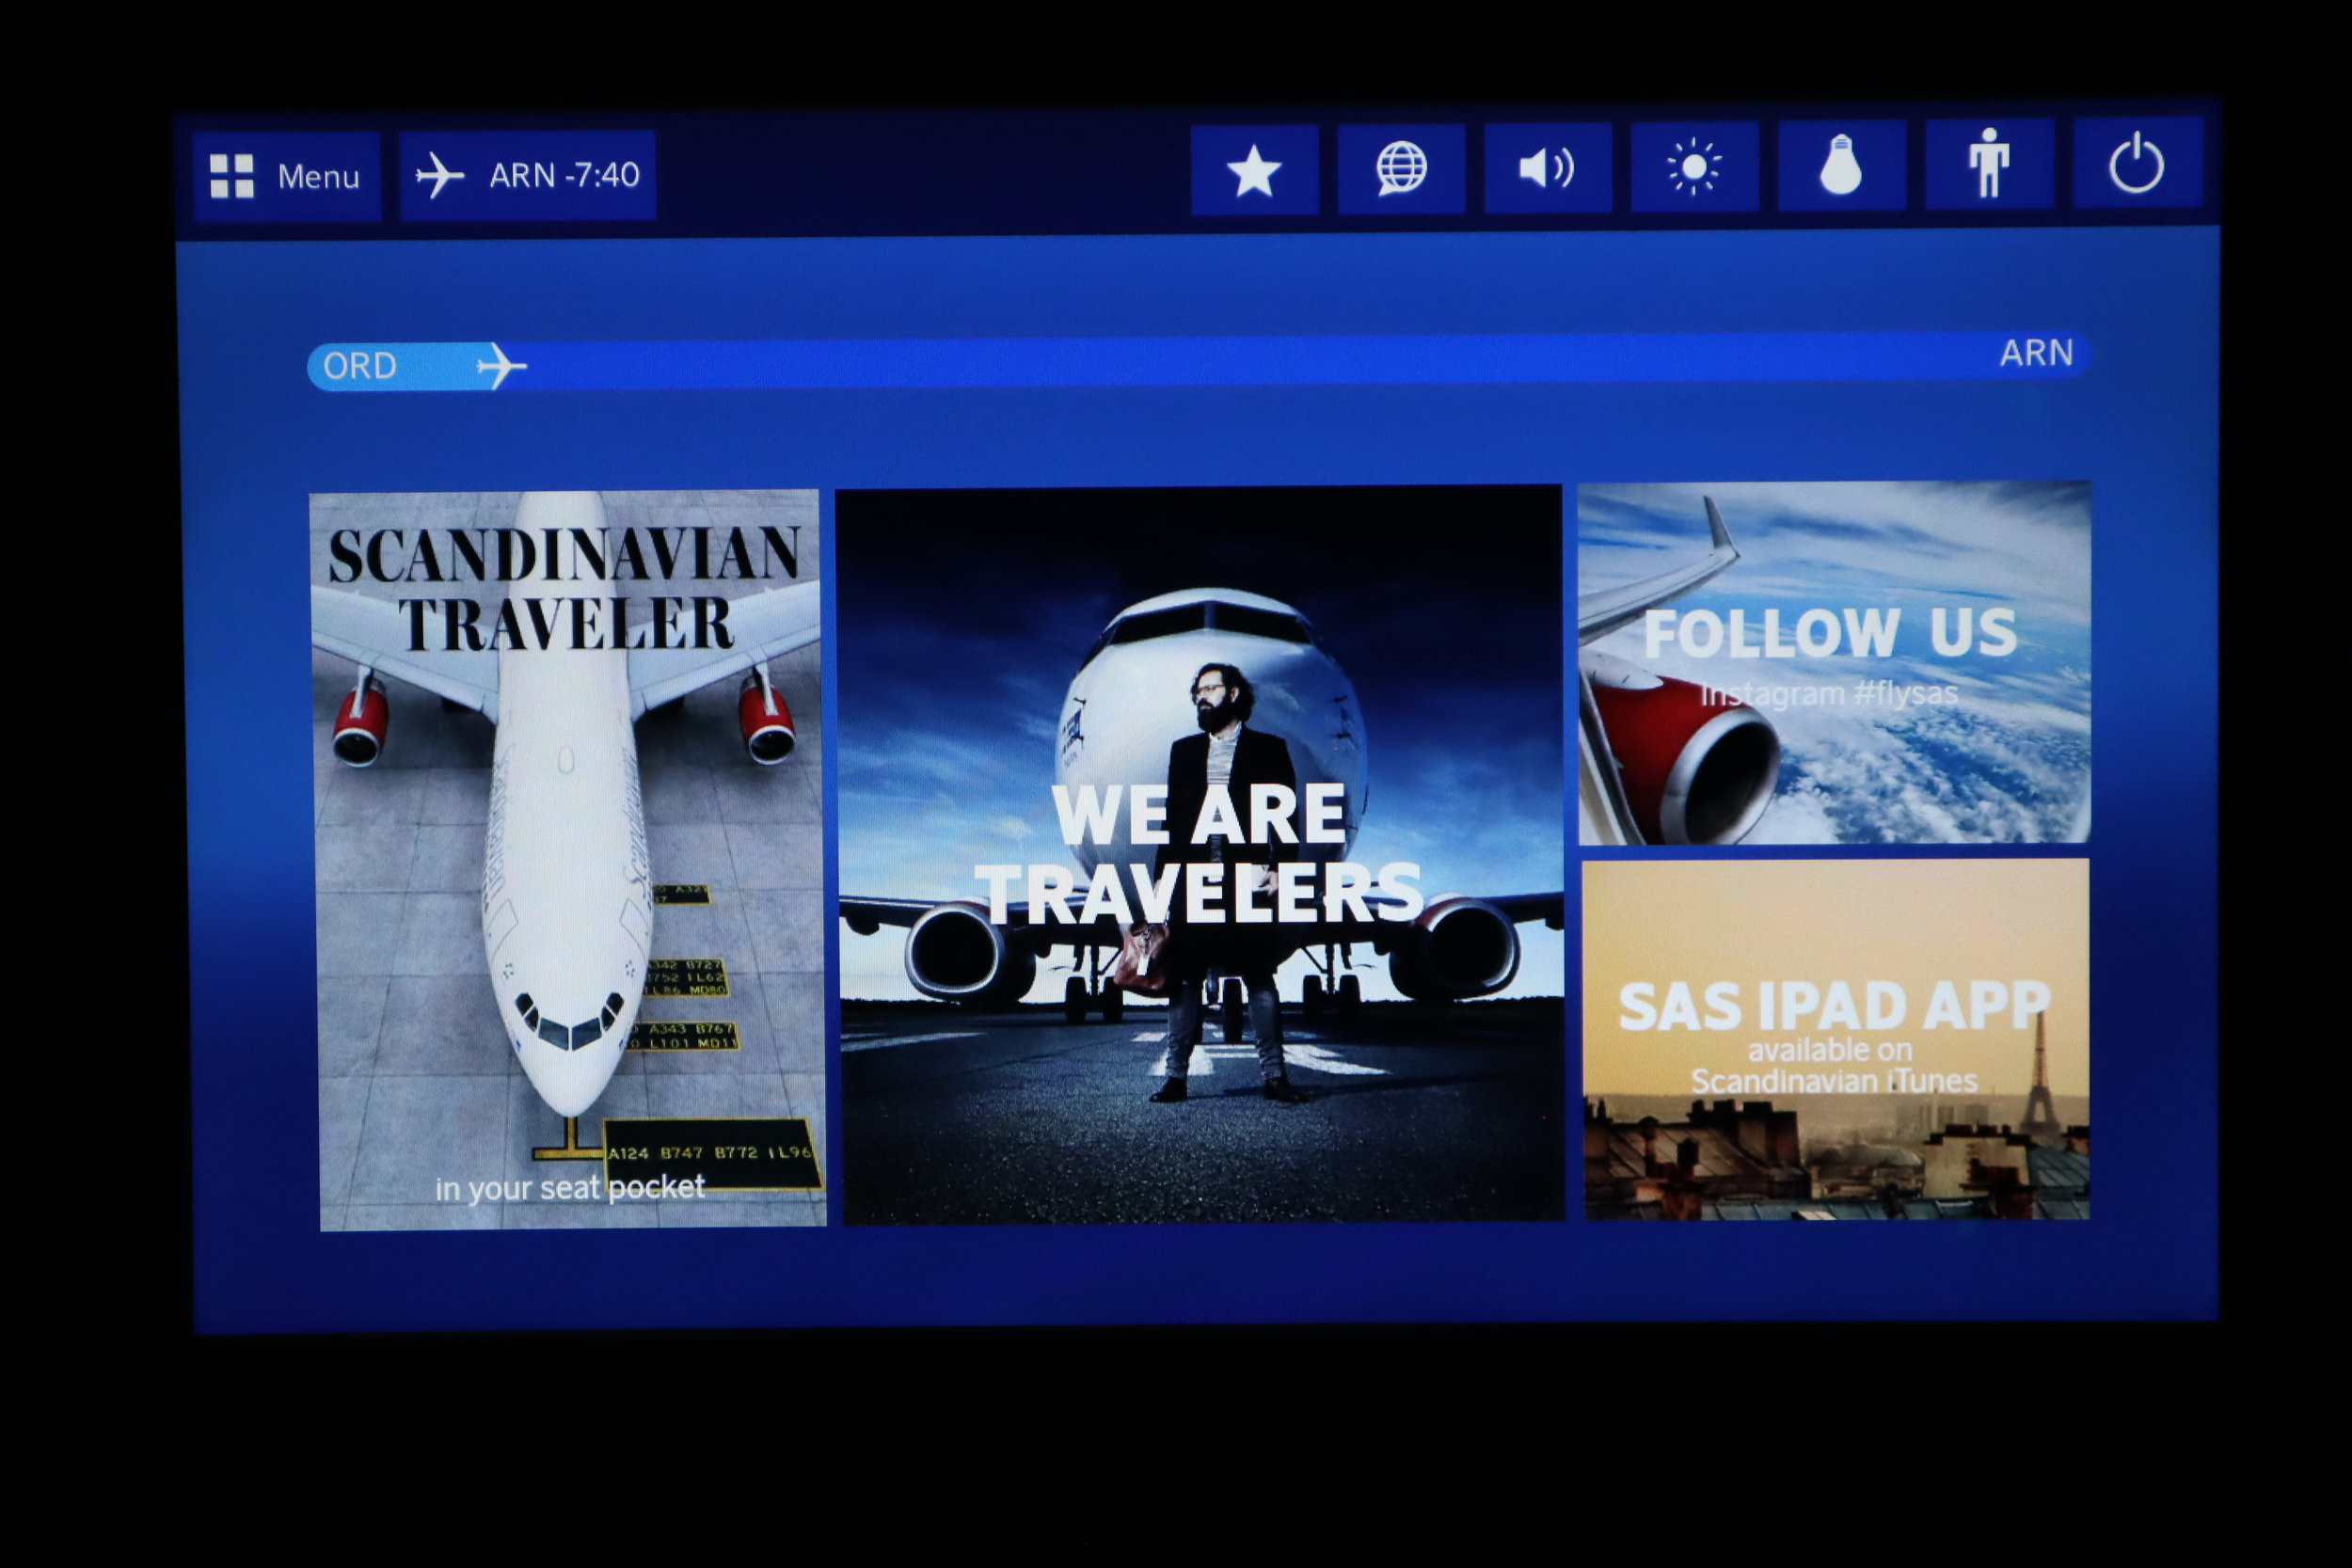 SAS business class – In-flight entertainment system